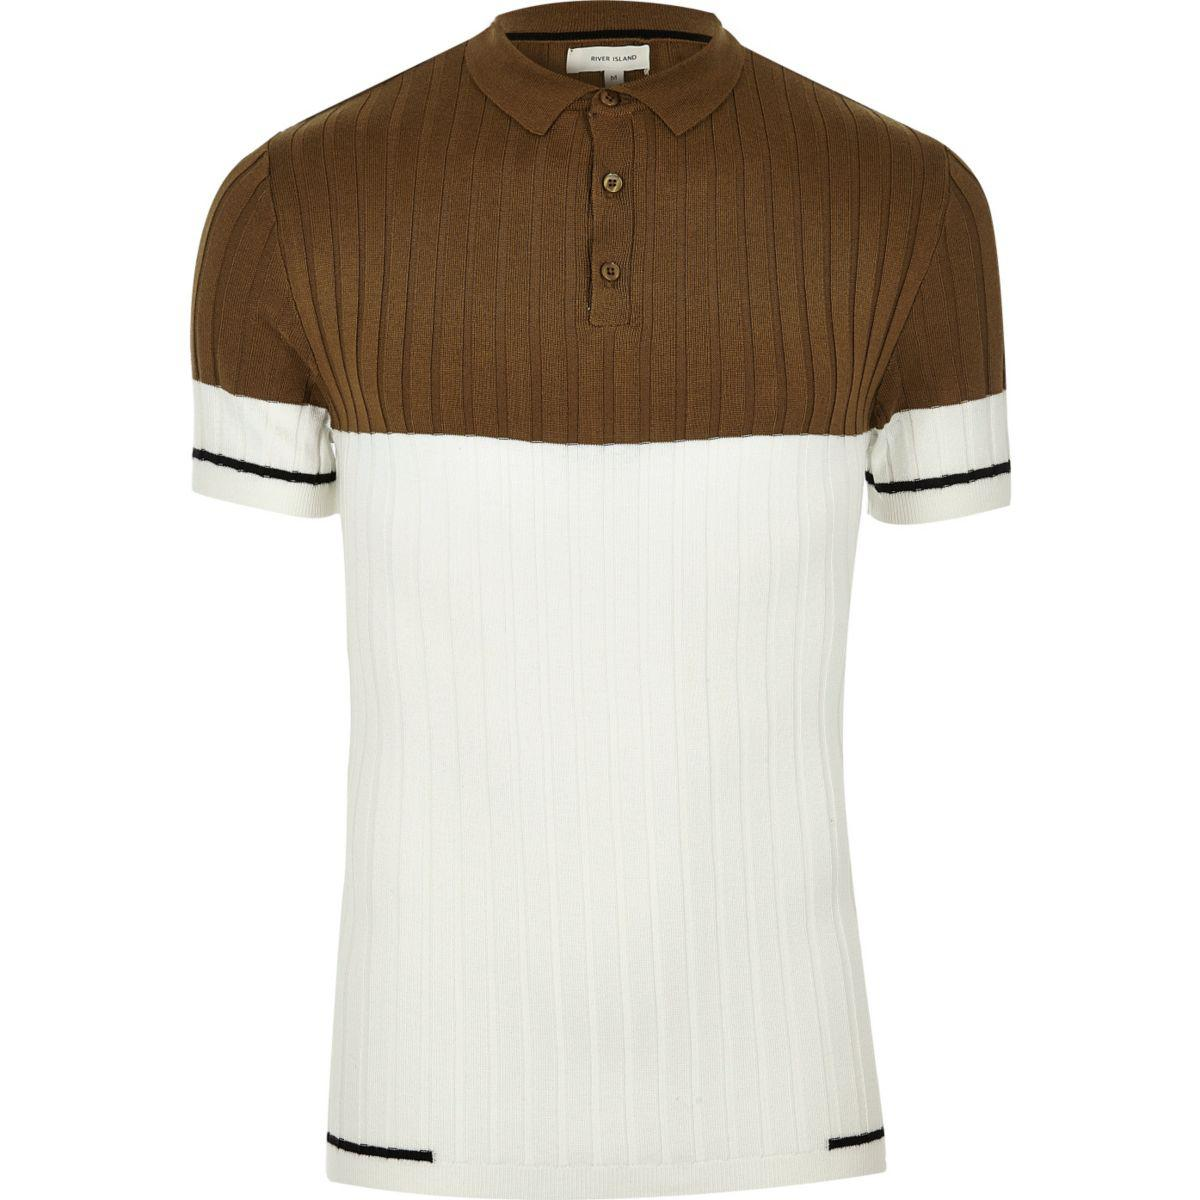 37426c2e75 Source · Lyst River Island Brown Ribbed Block Muscle Fit Polo Shirt in